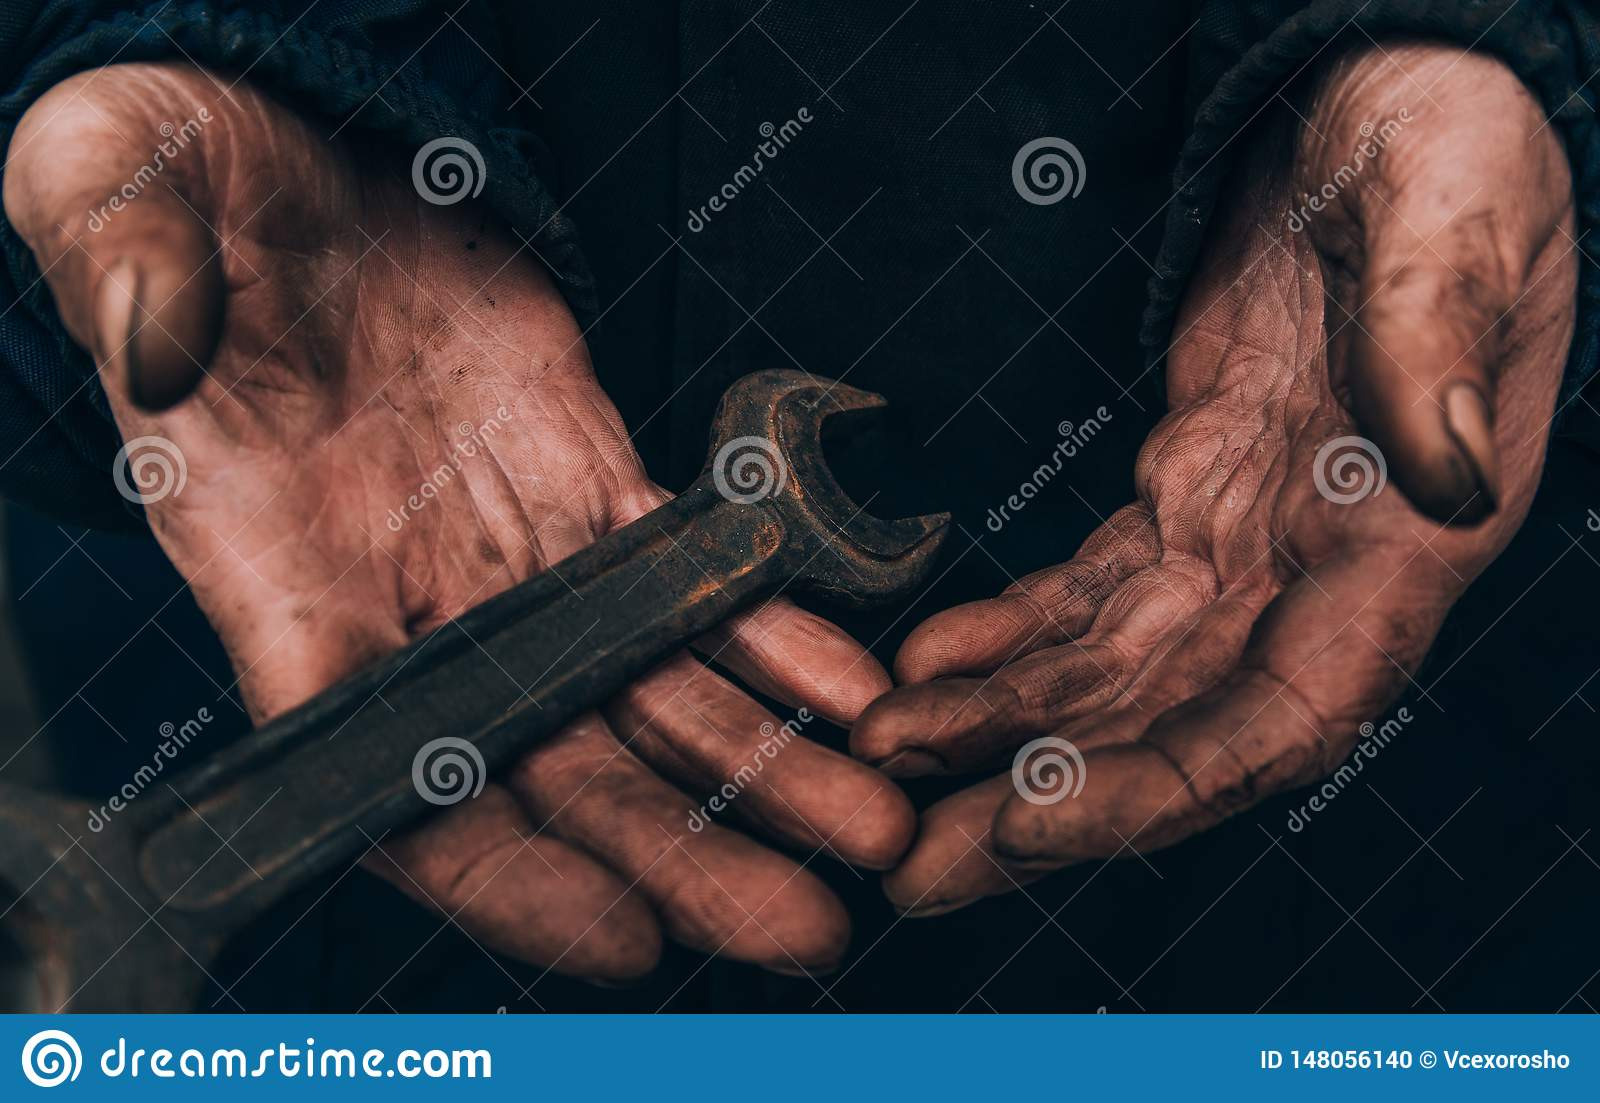 Dirty hands of a man, a working man, a man drained his hands while working, a poor man